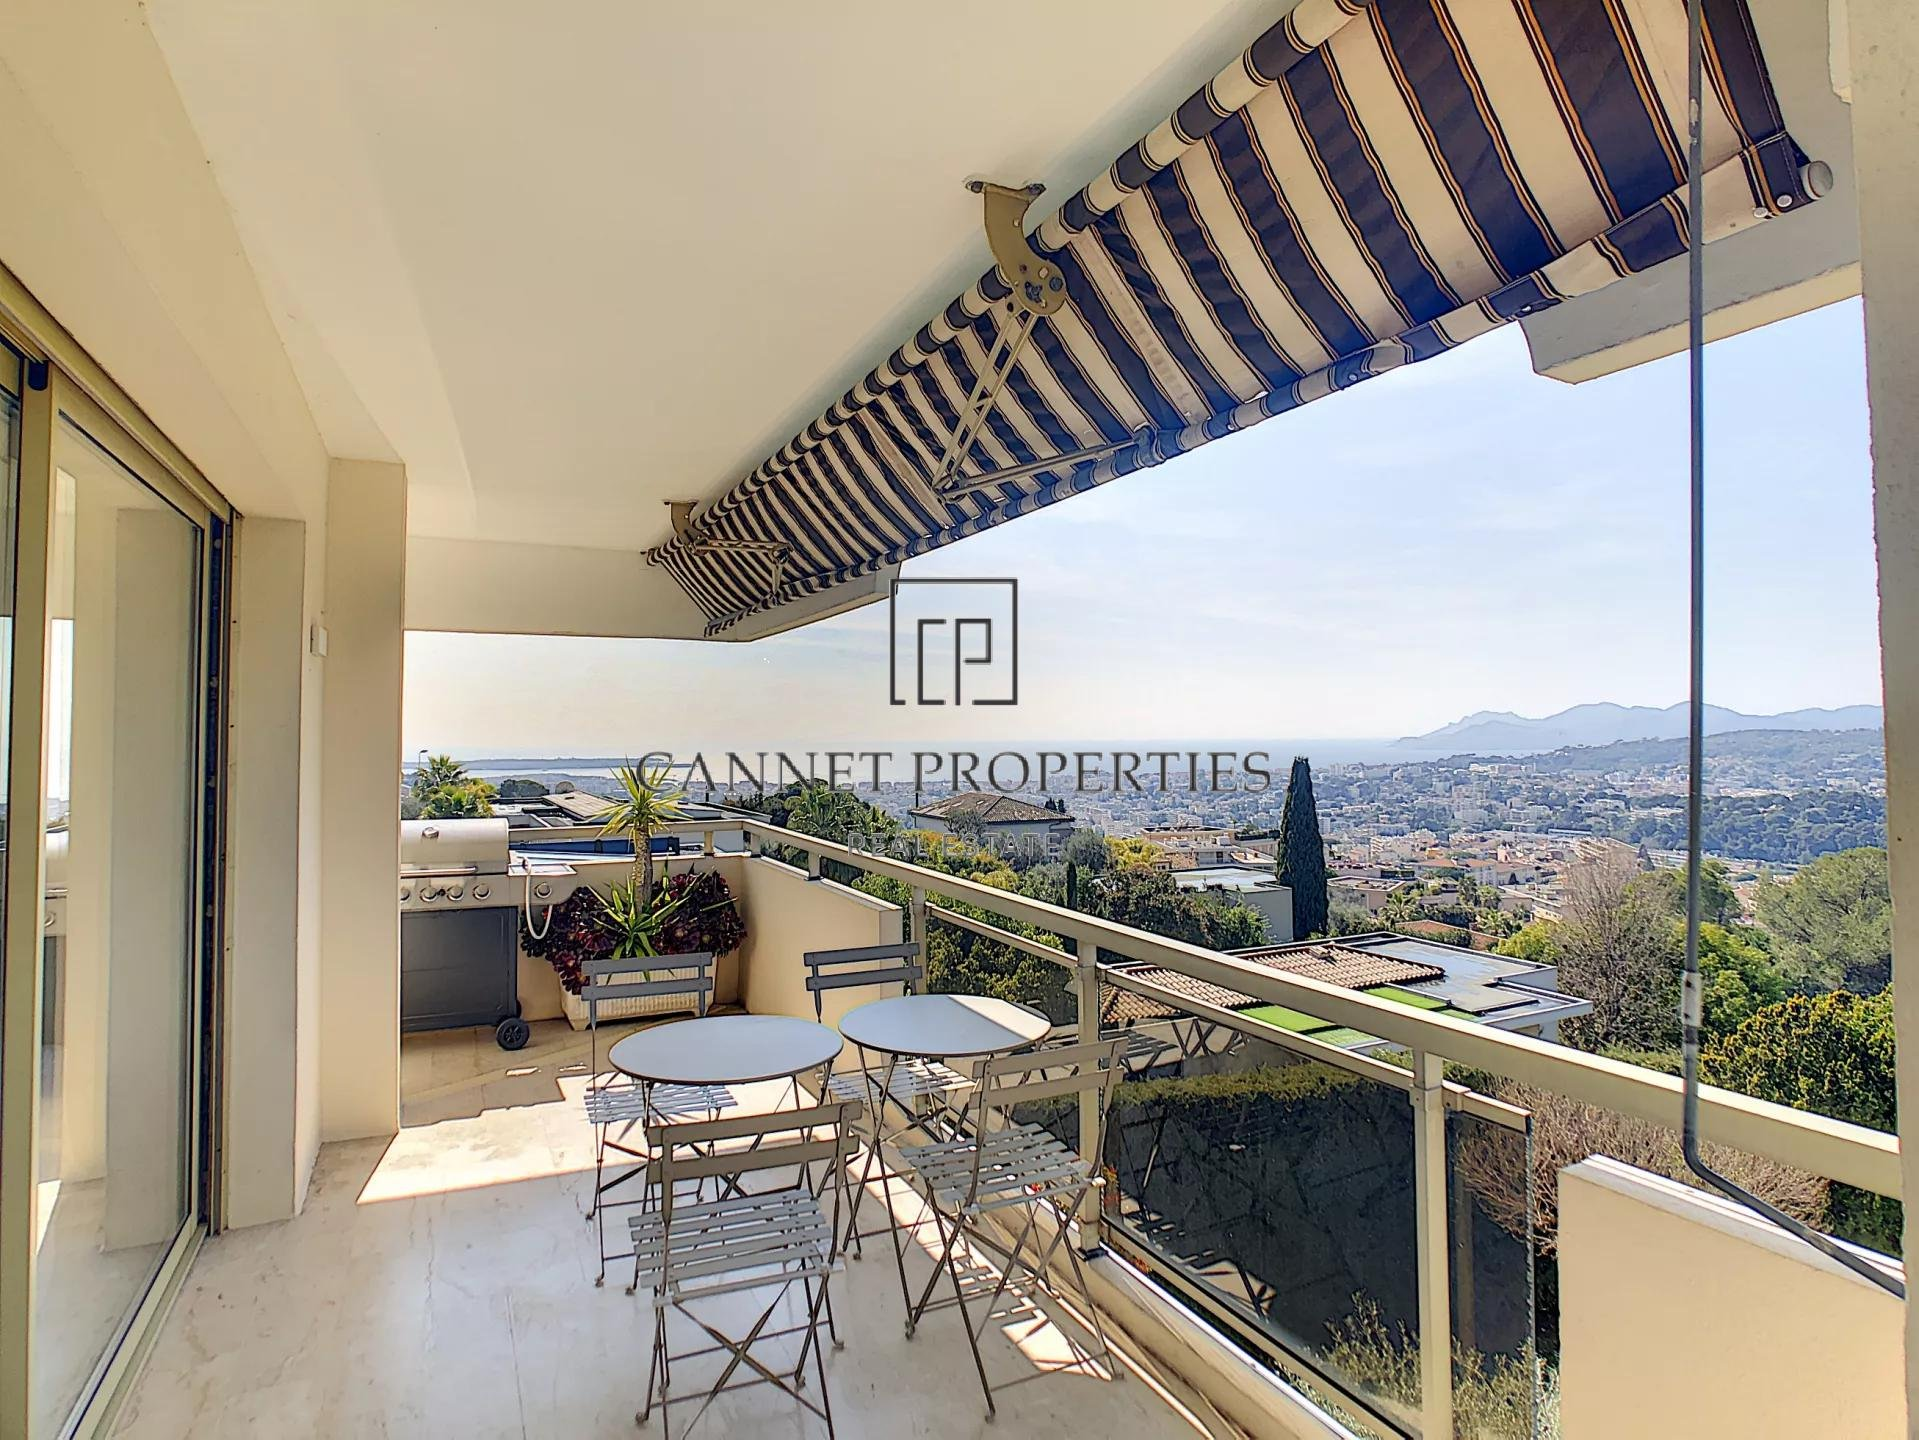 Magnificent renovated apartment with panoramic view of the bay of Cannes